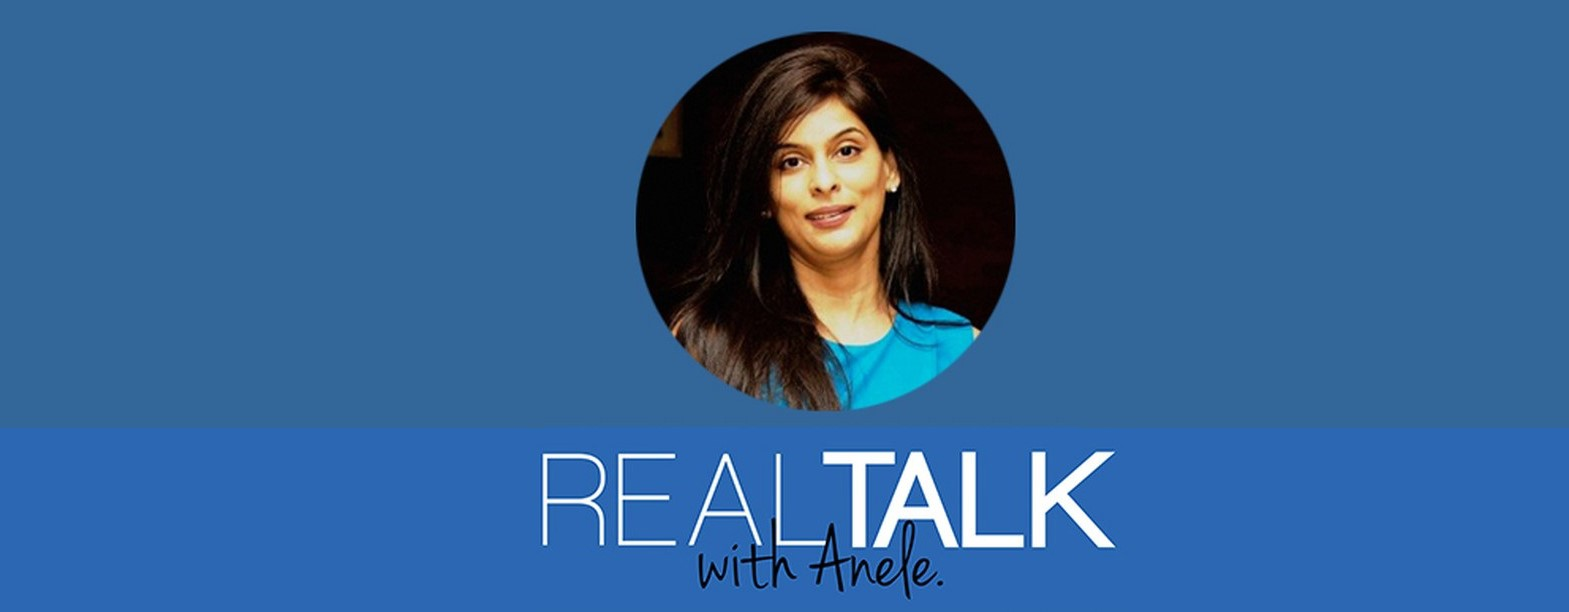 Professor Deevia Bhana on SABC 3's Real Talk with Anele.